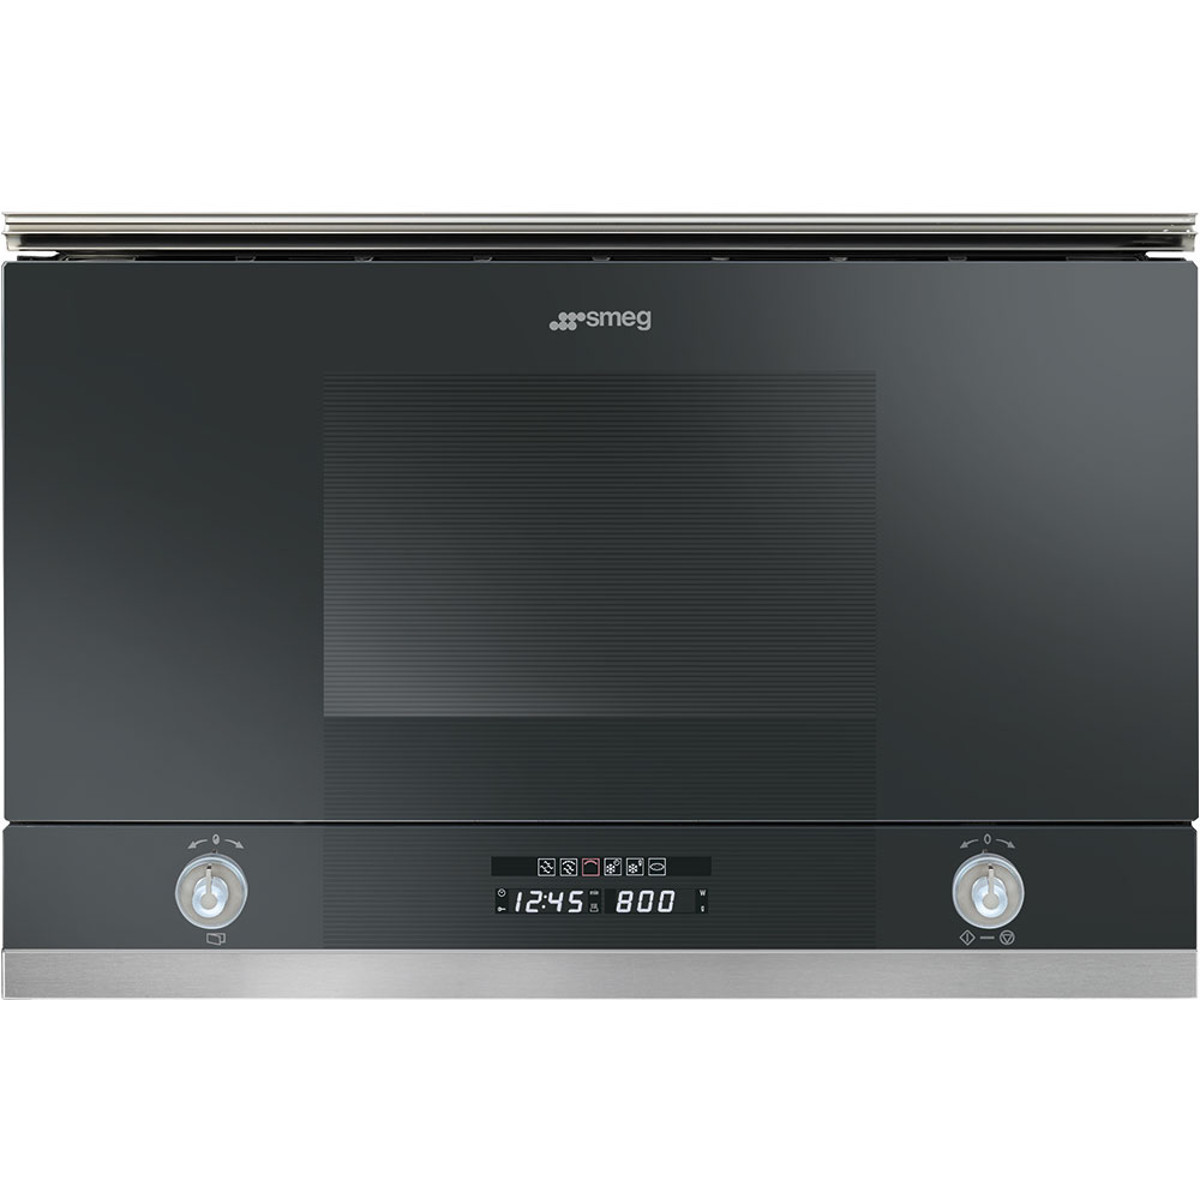 smeg wall oven wiring diagram avital 4103 mp122n linea aesthetic microwave with electric